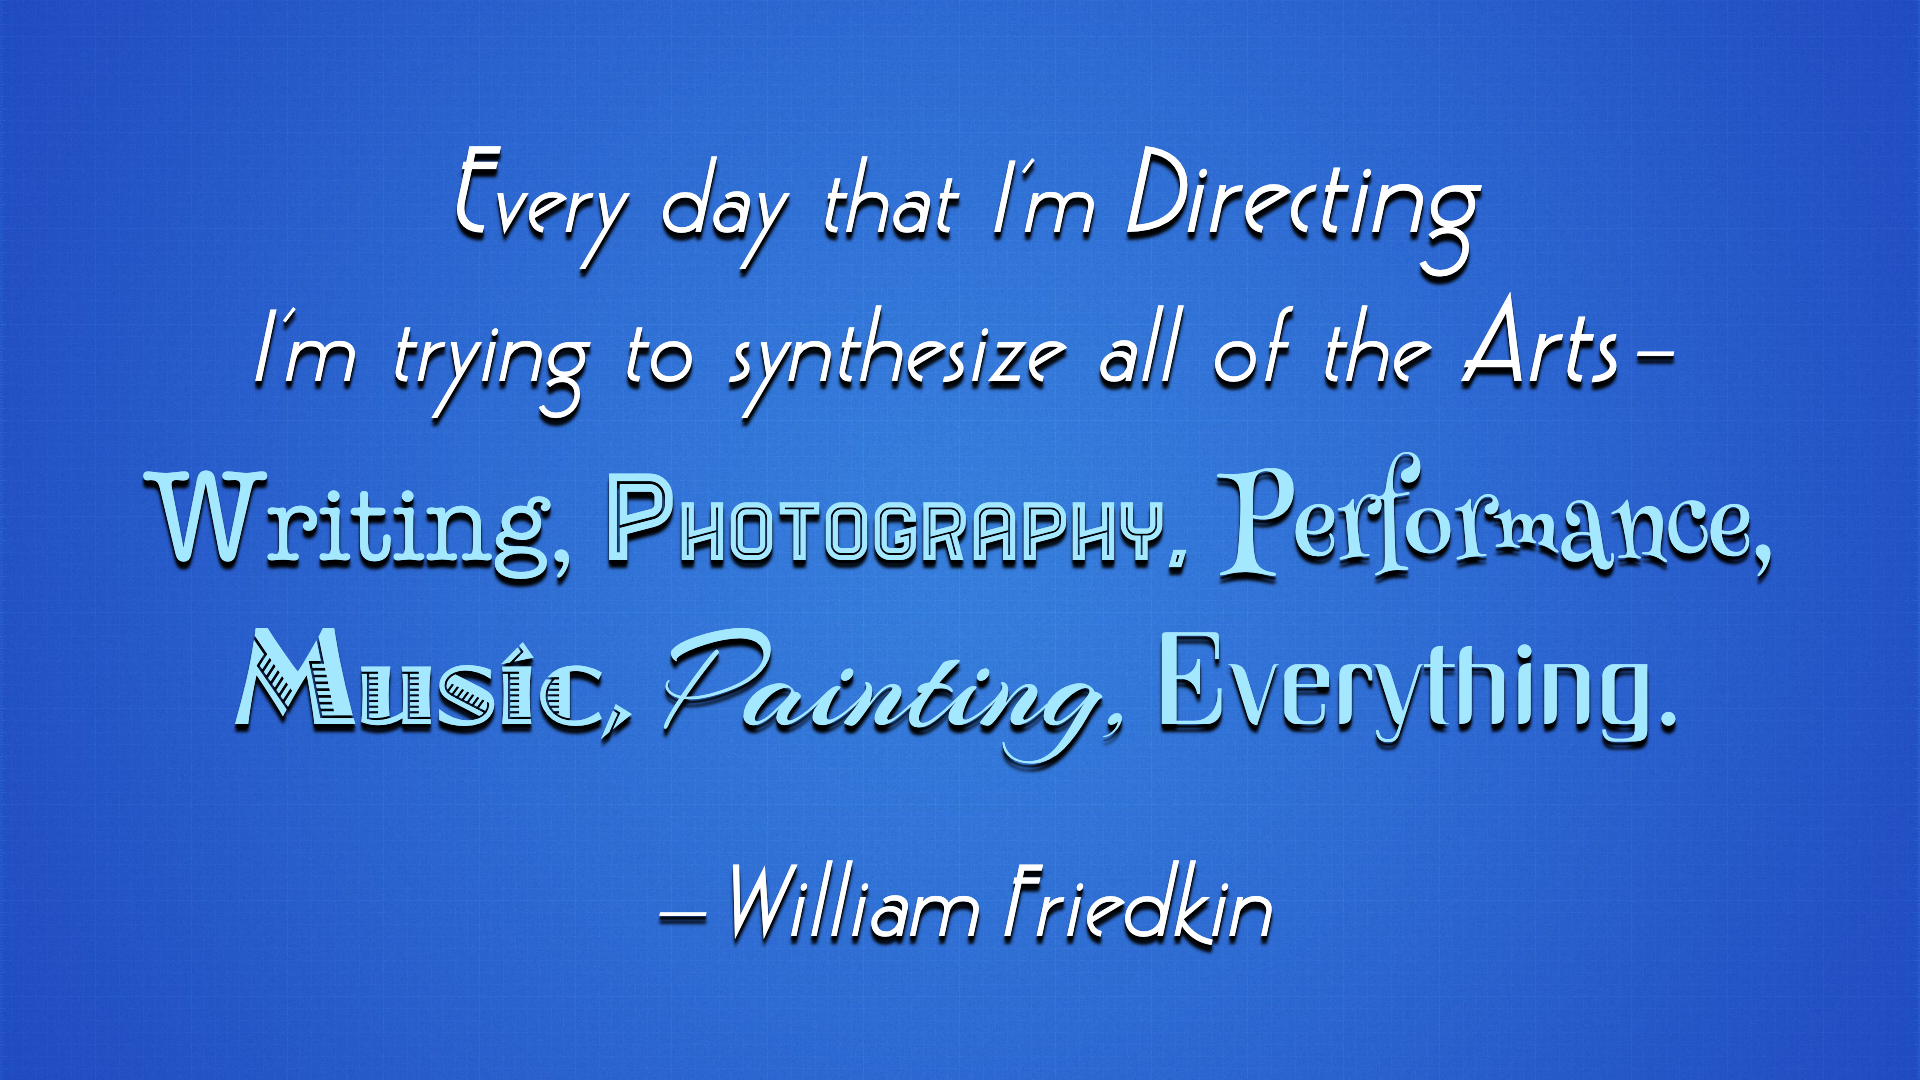 William Friedkin Quote by RSeer